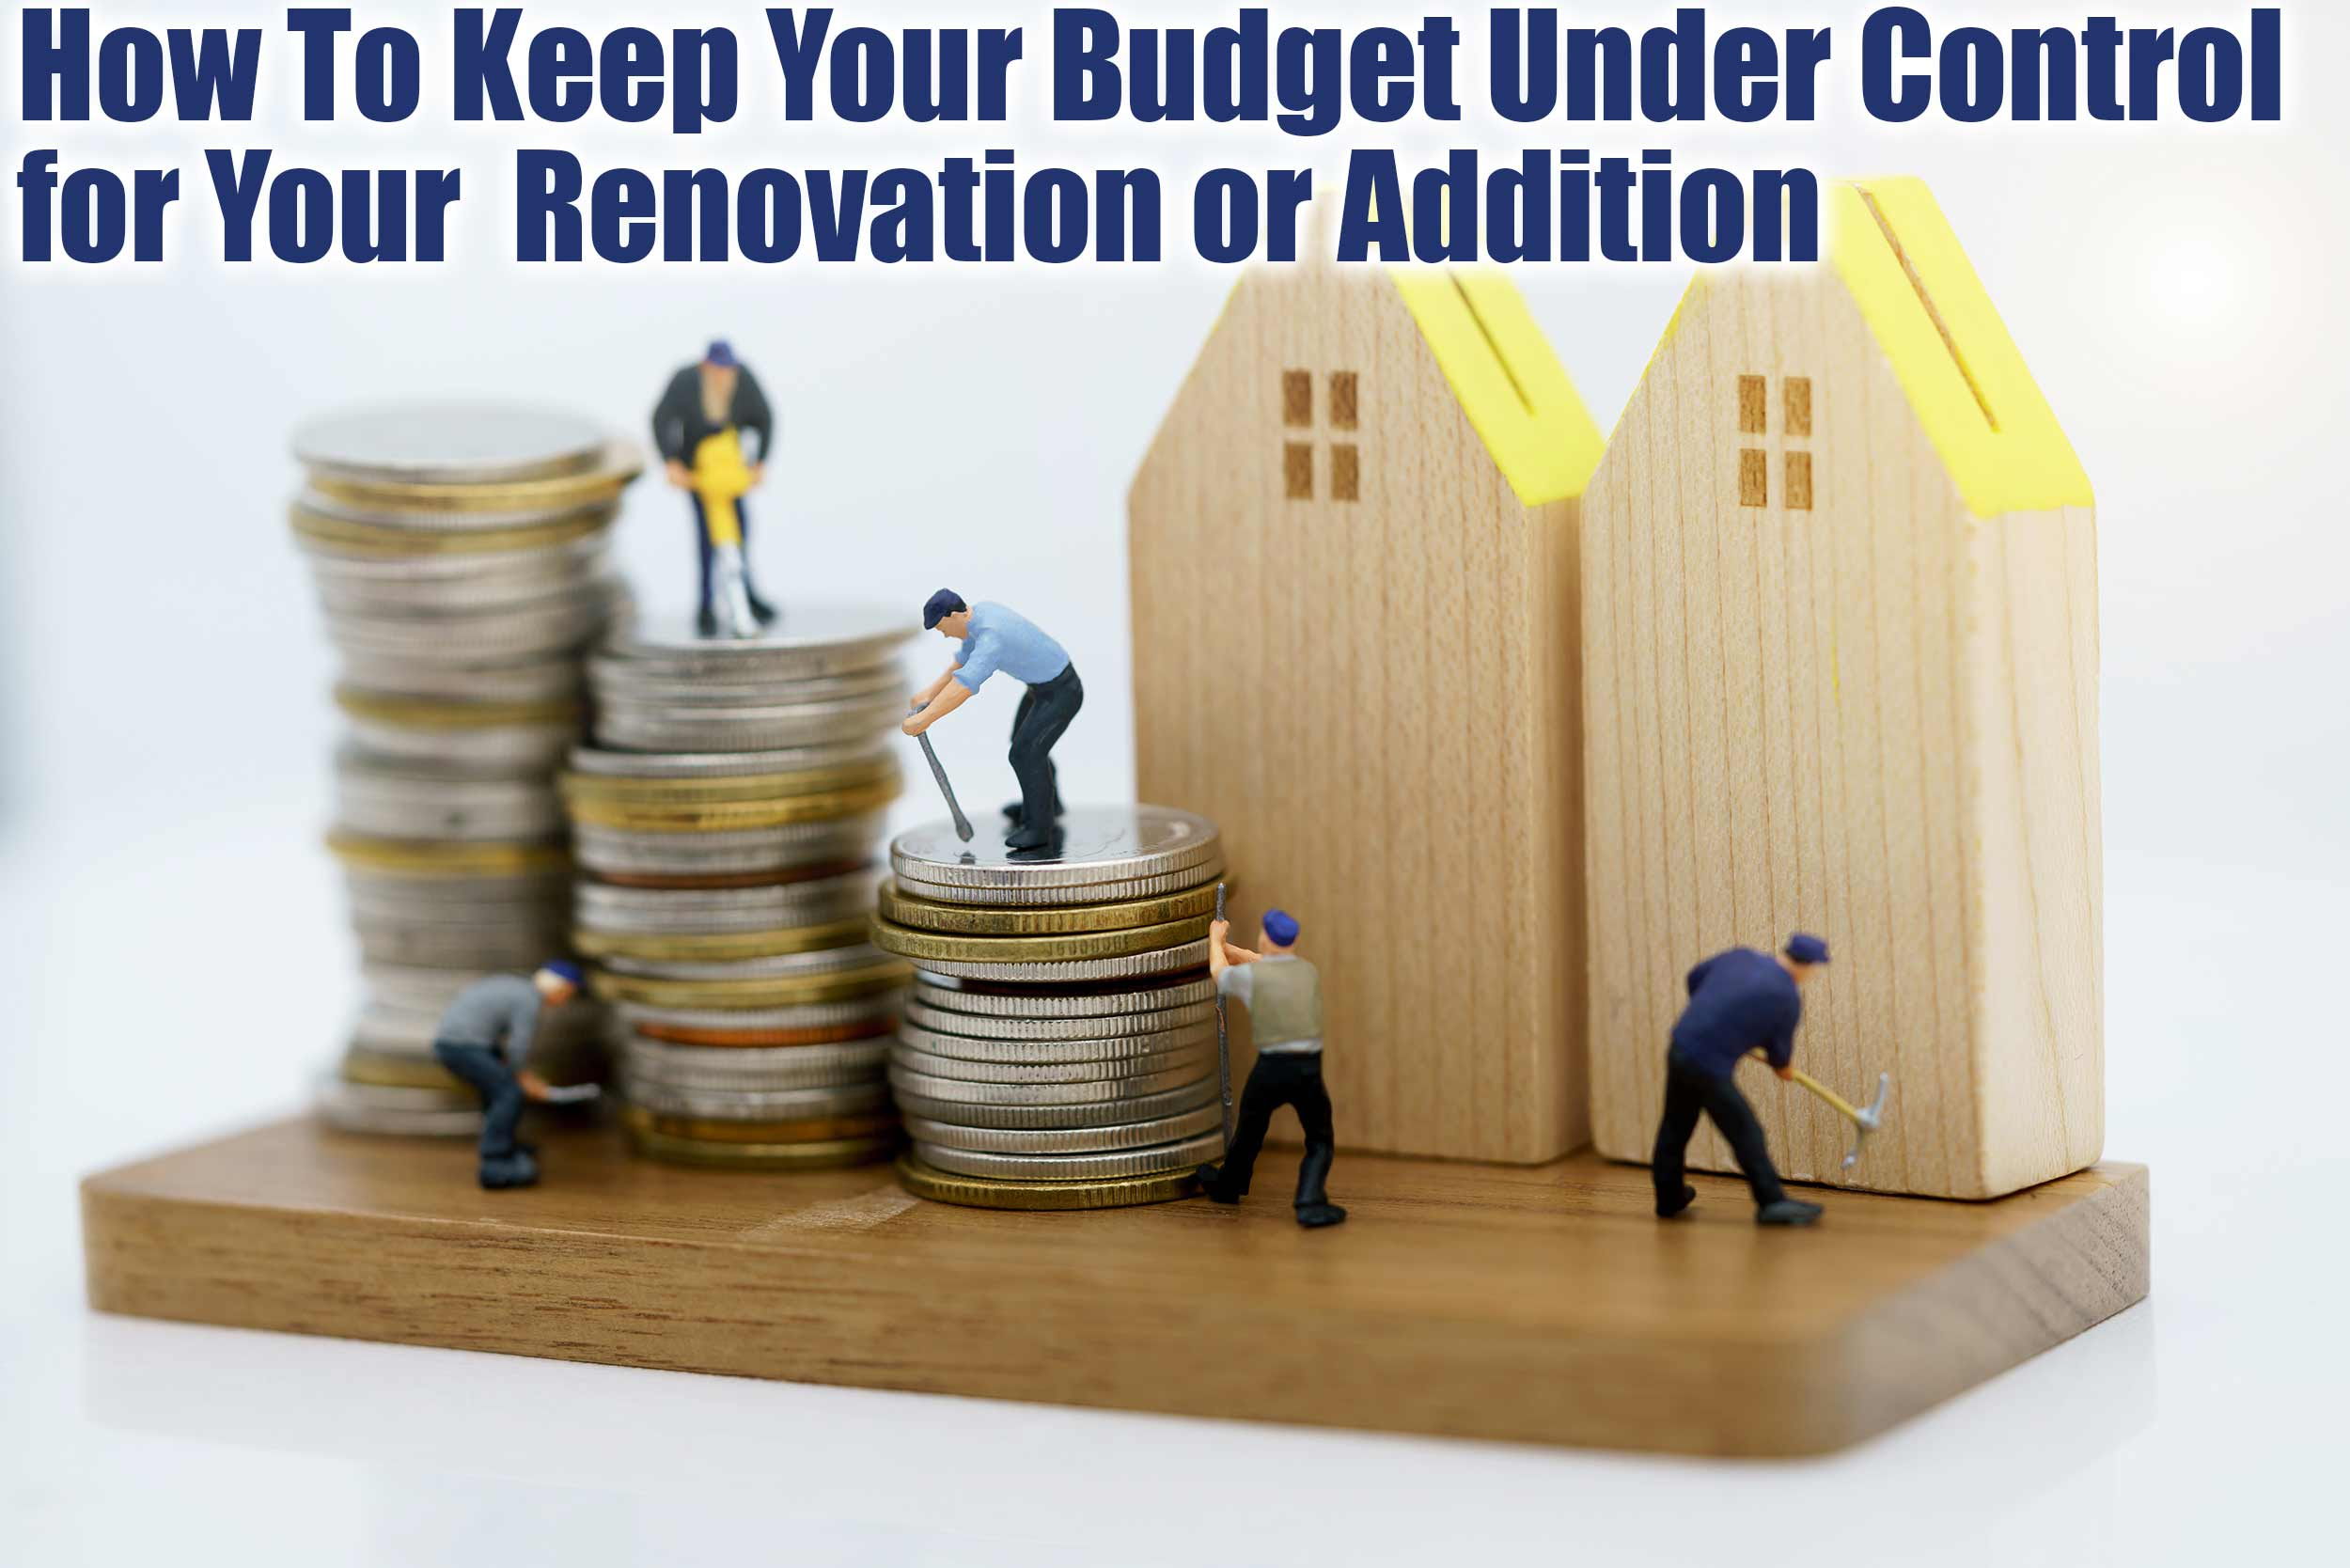 How To Keep Your Budget Under Control Image